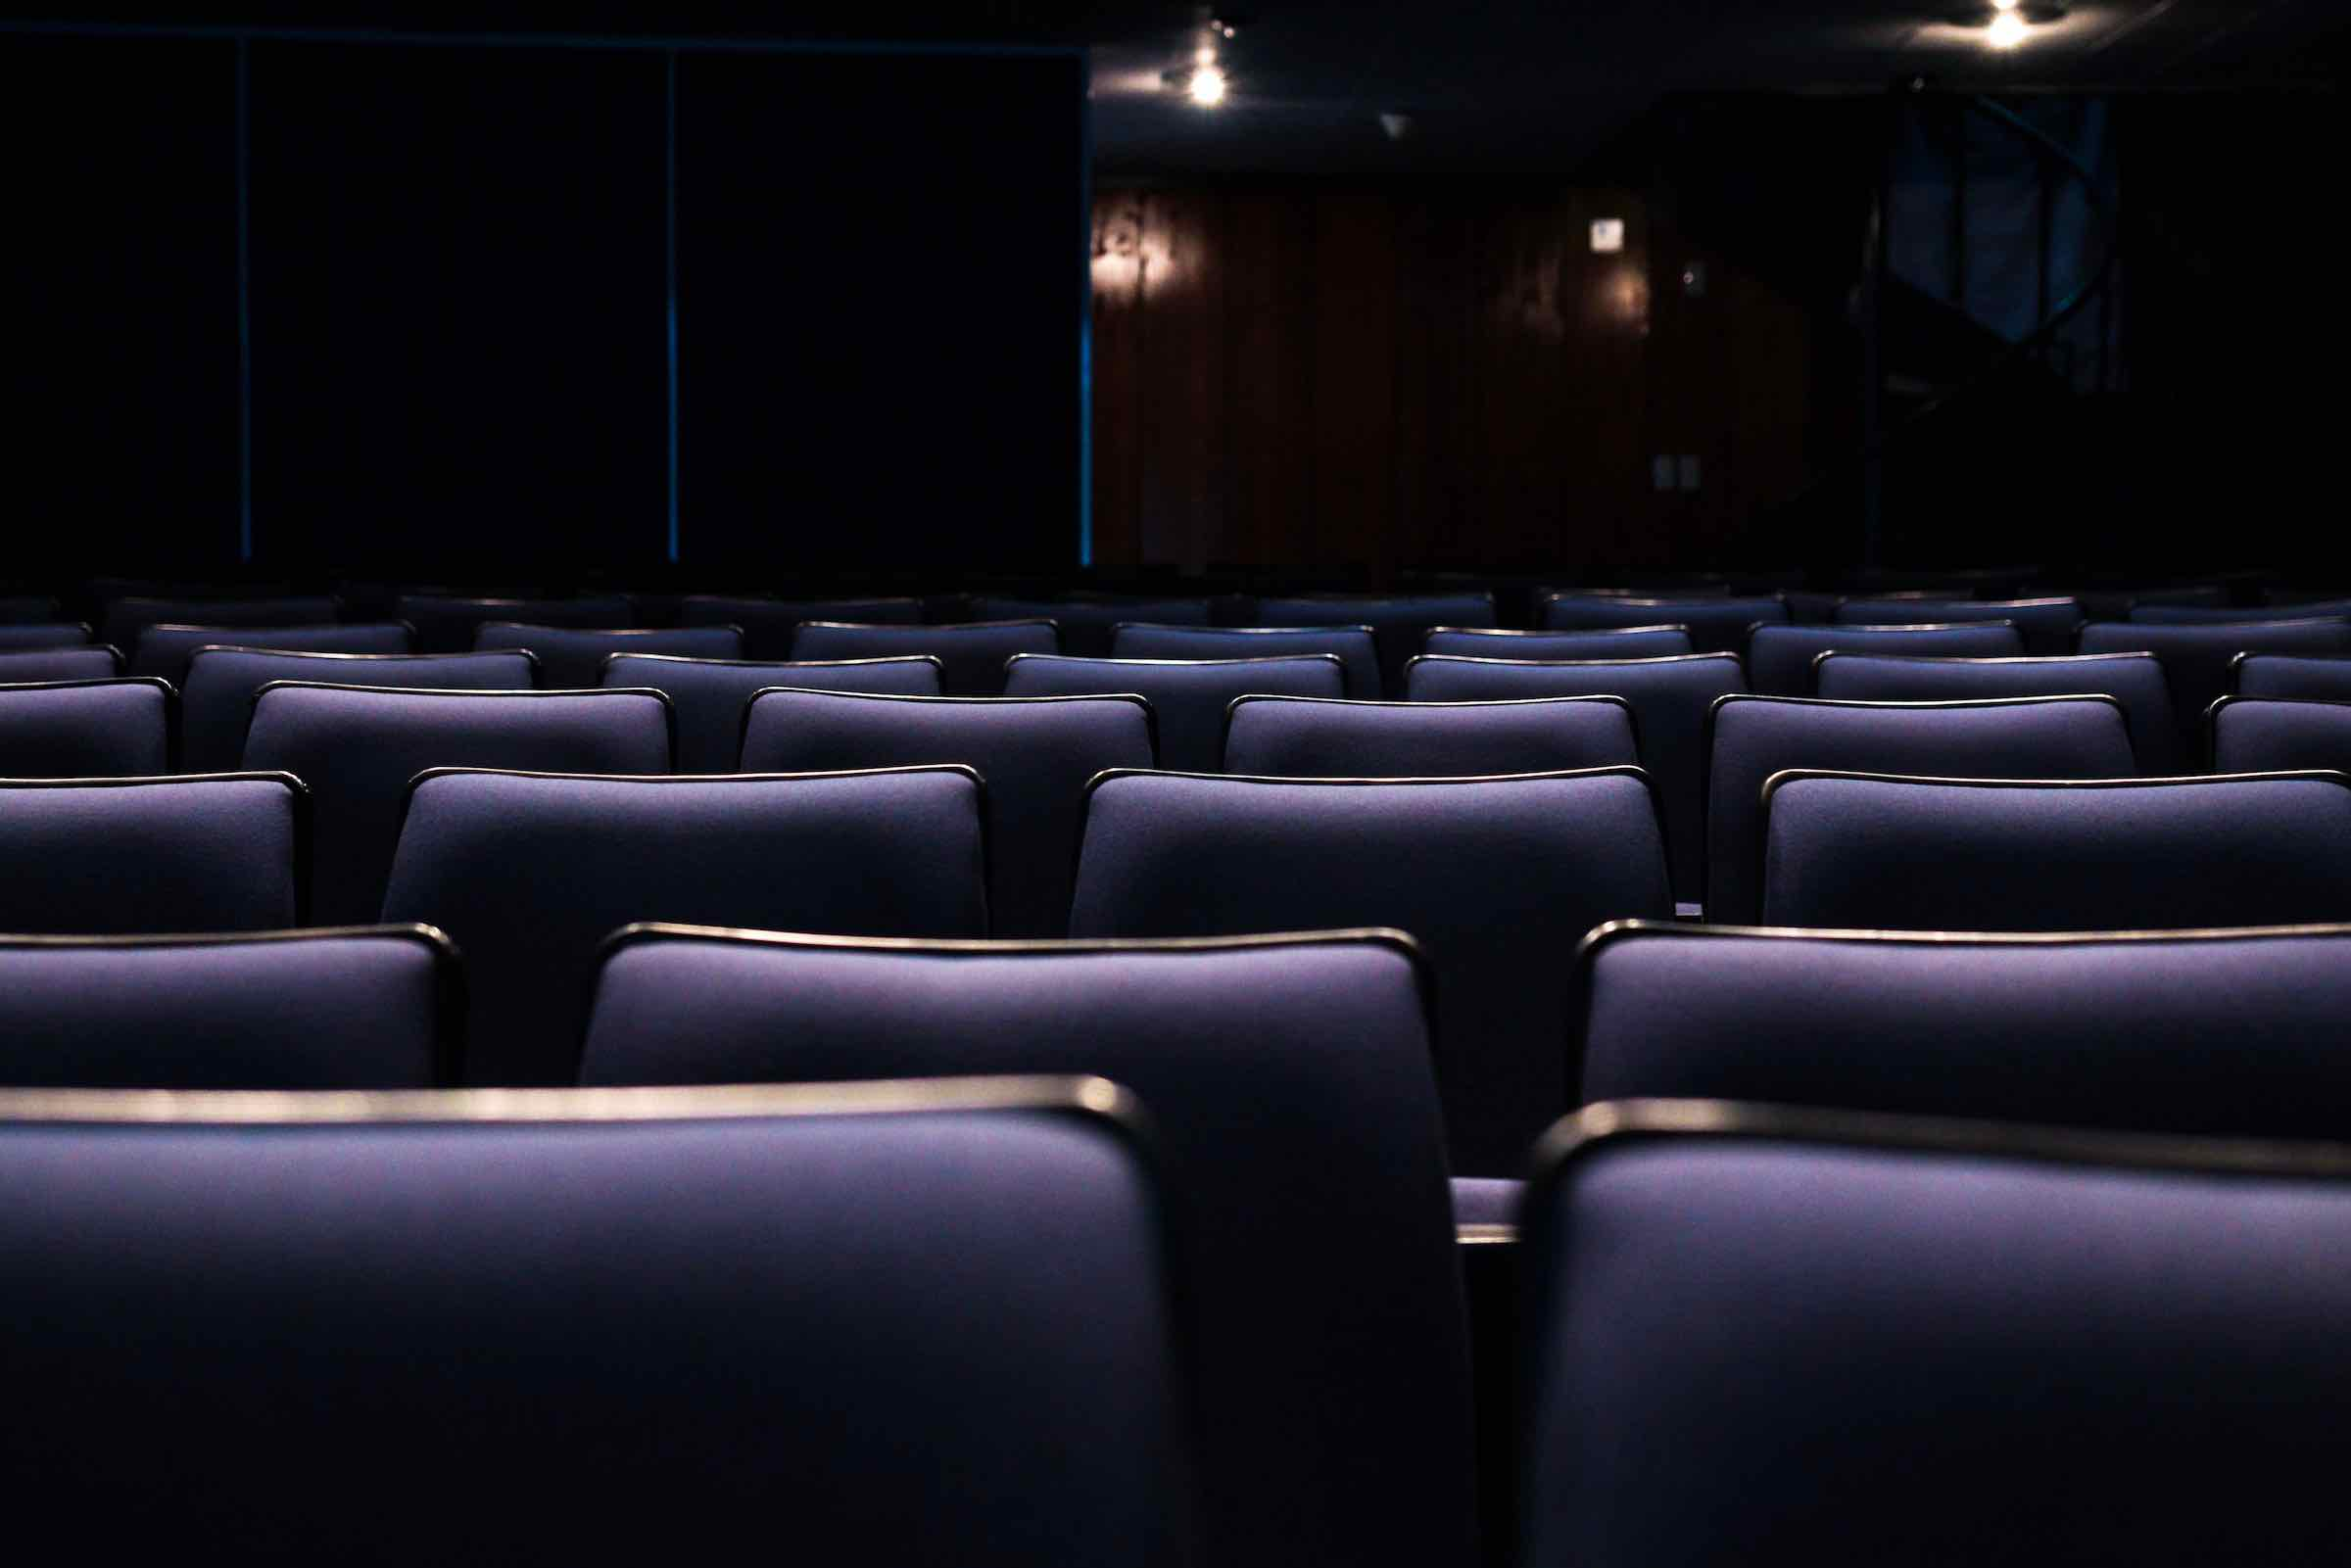 A good home cinema makes a serious difference in watching movies. But there's much more to creating a home cinema than just installing the right equipment.